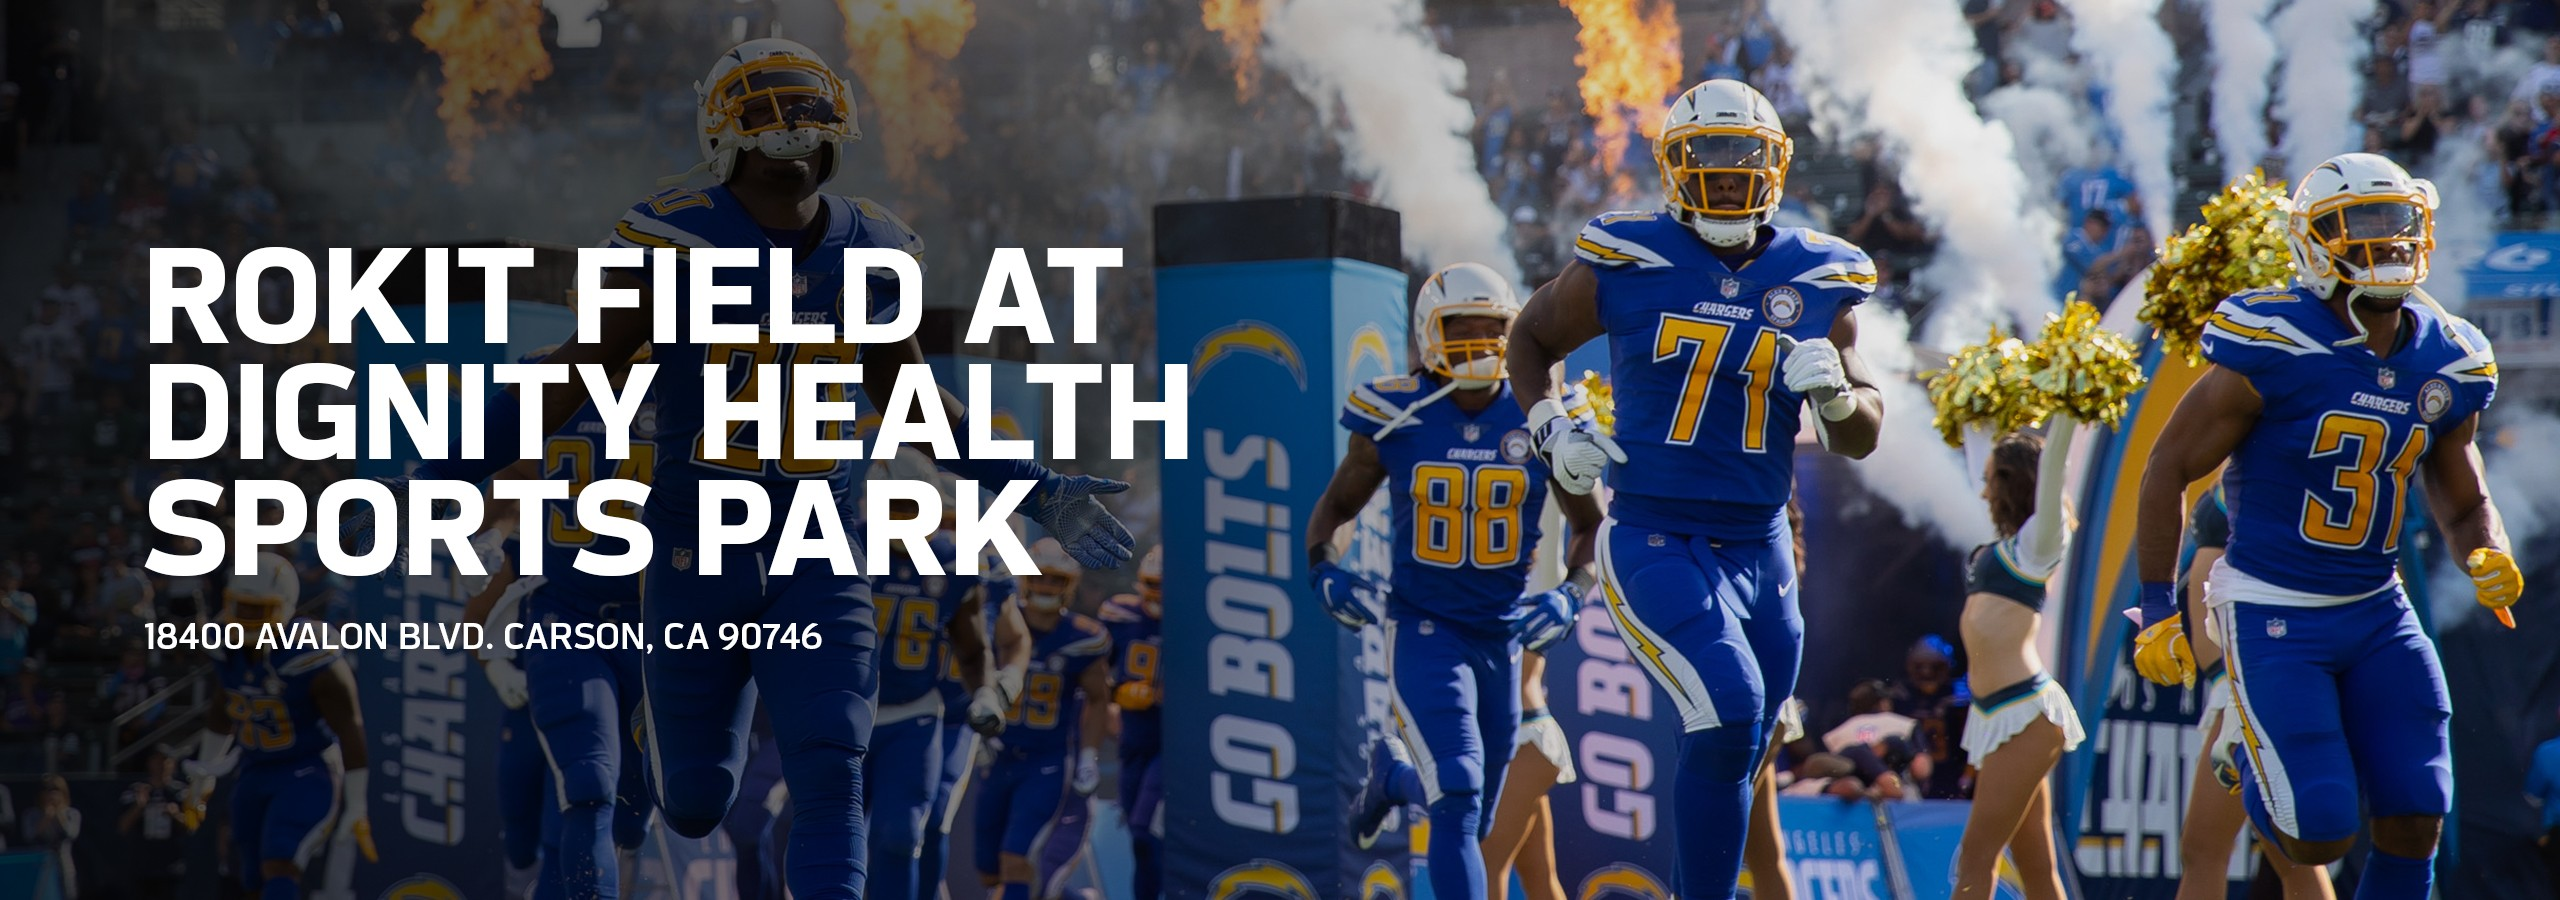 official photos eaca2 07b72 Chargers ROKiT Field at Dignity Health Sports Park | Los ...